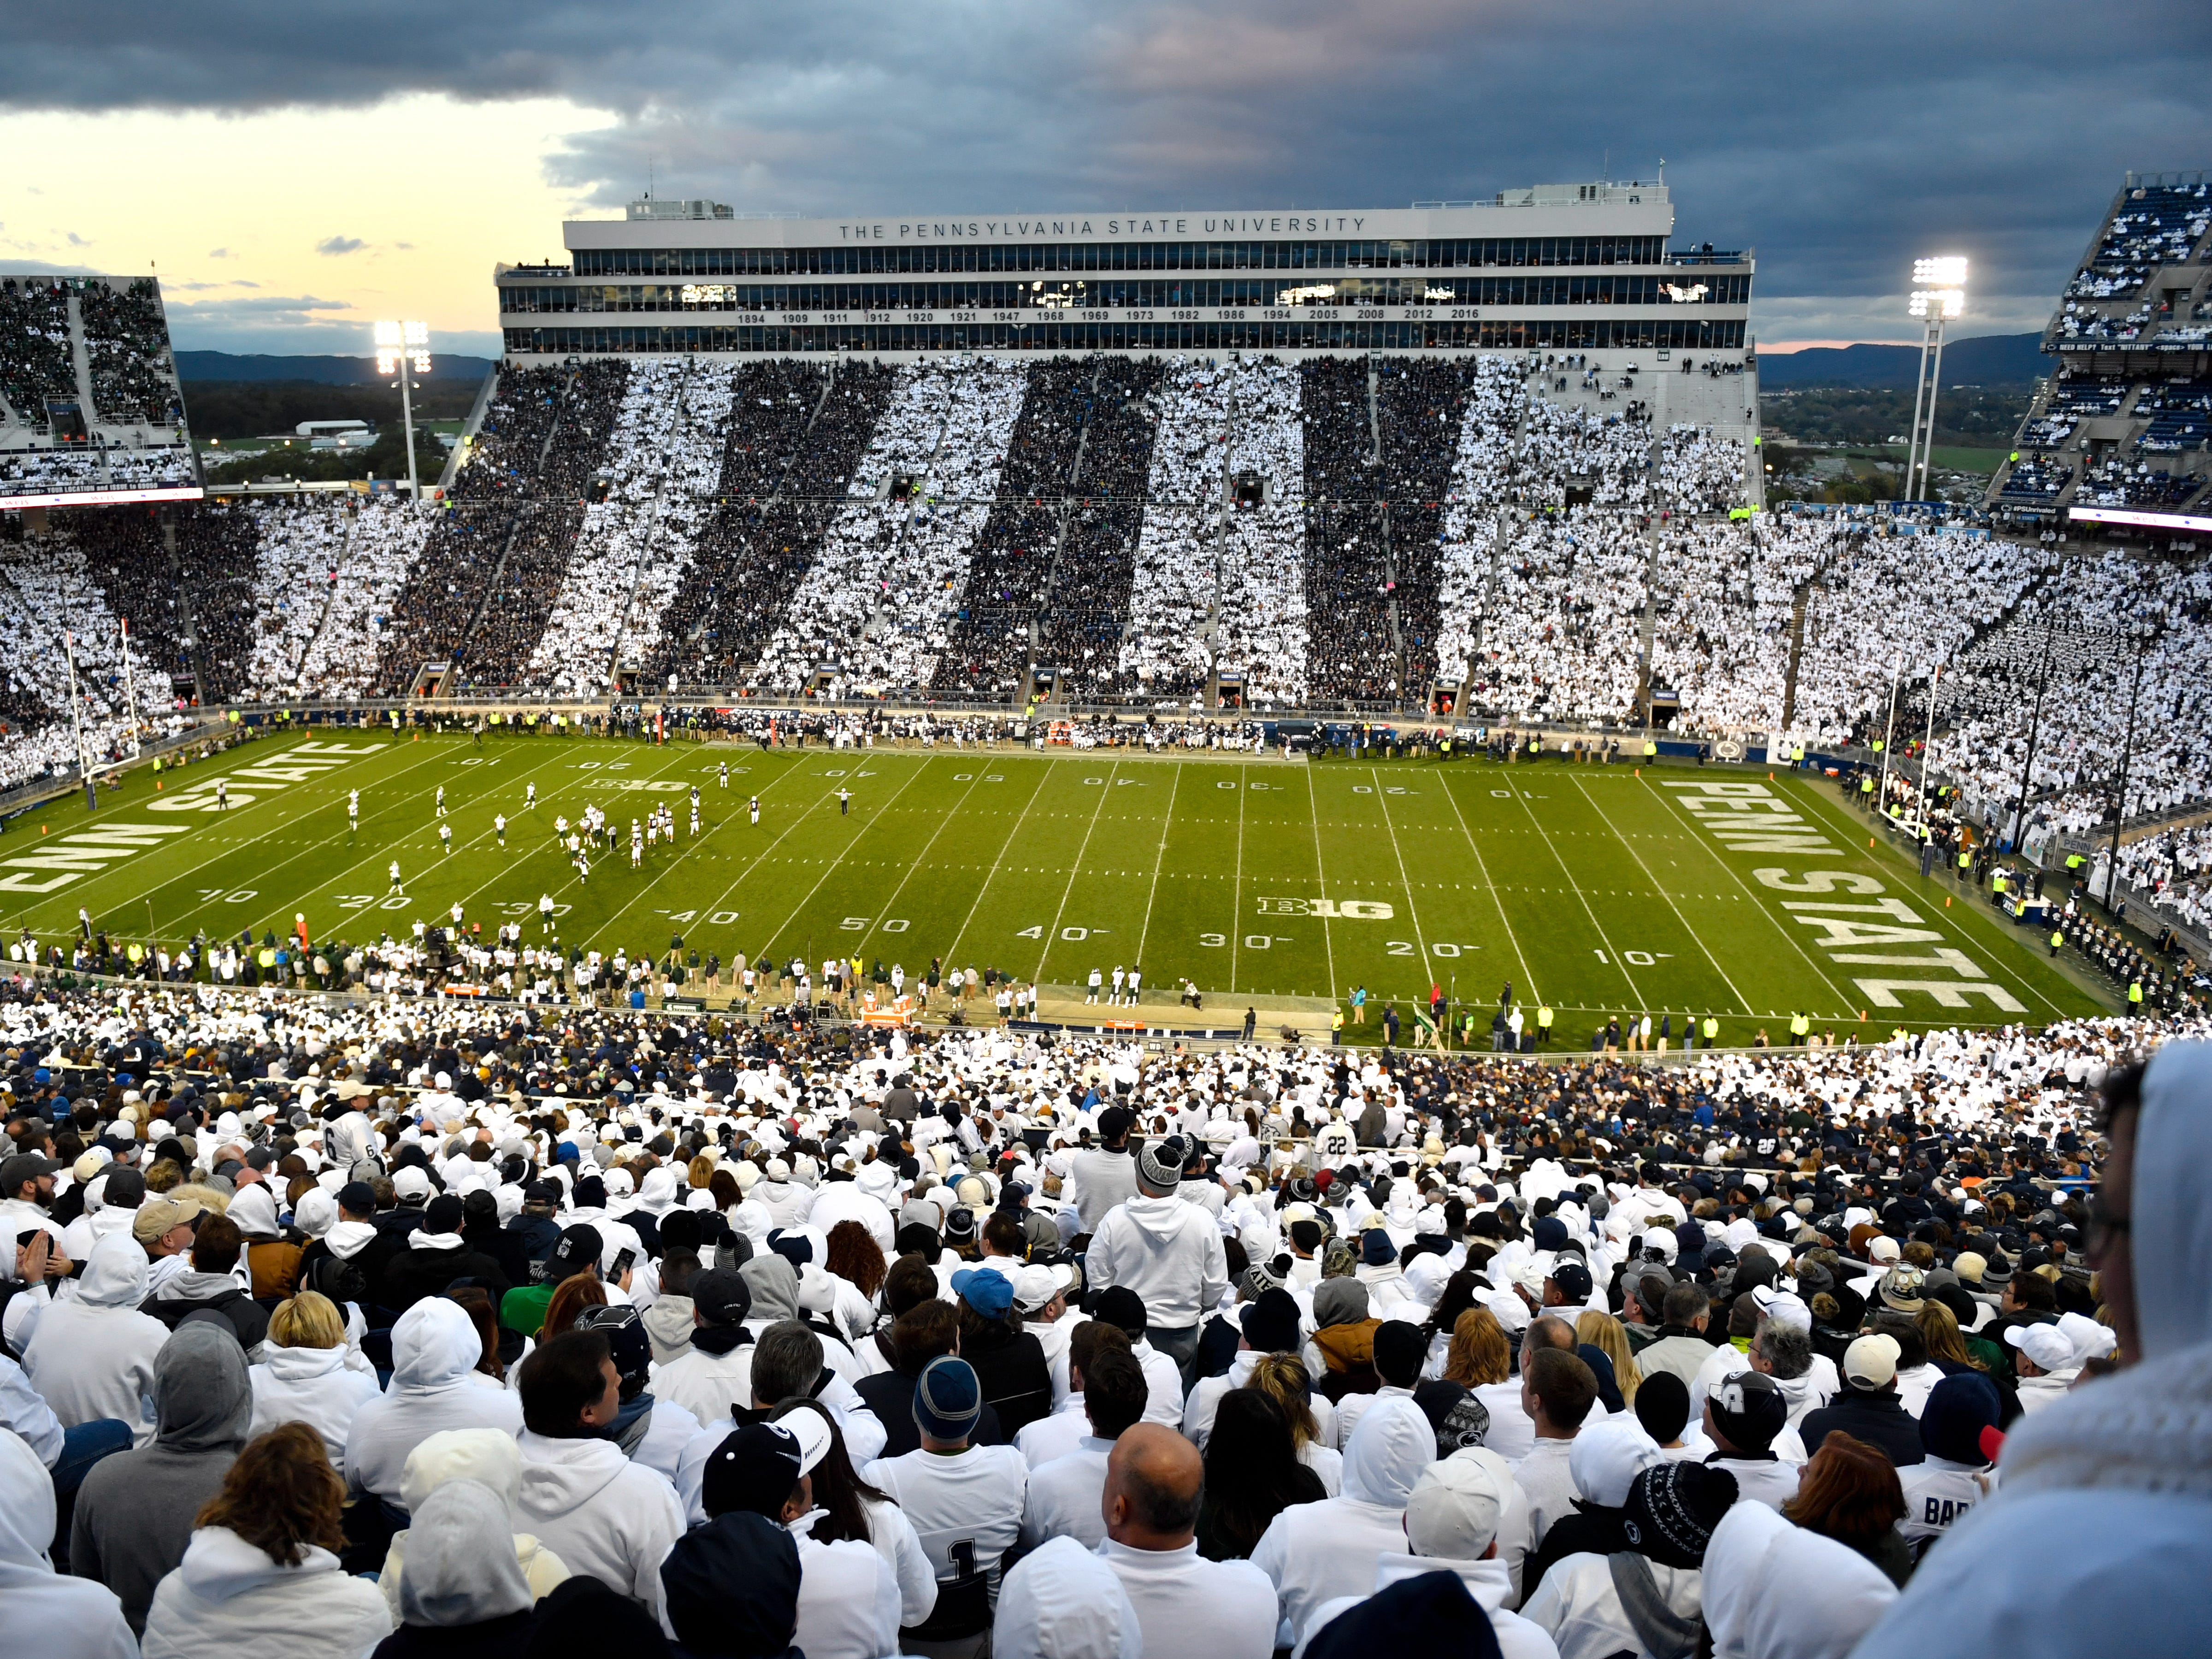 """The Penn State Homecoming game was a """"strip-out"""" against Michigan State, October 13, 2018. The Nittany Lions fell to the Spartans 17-21."""